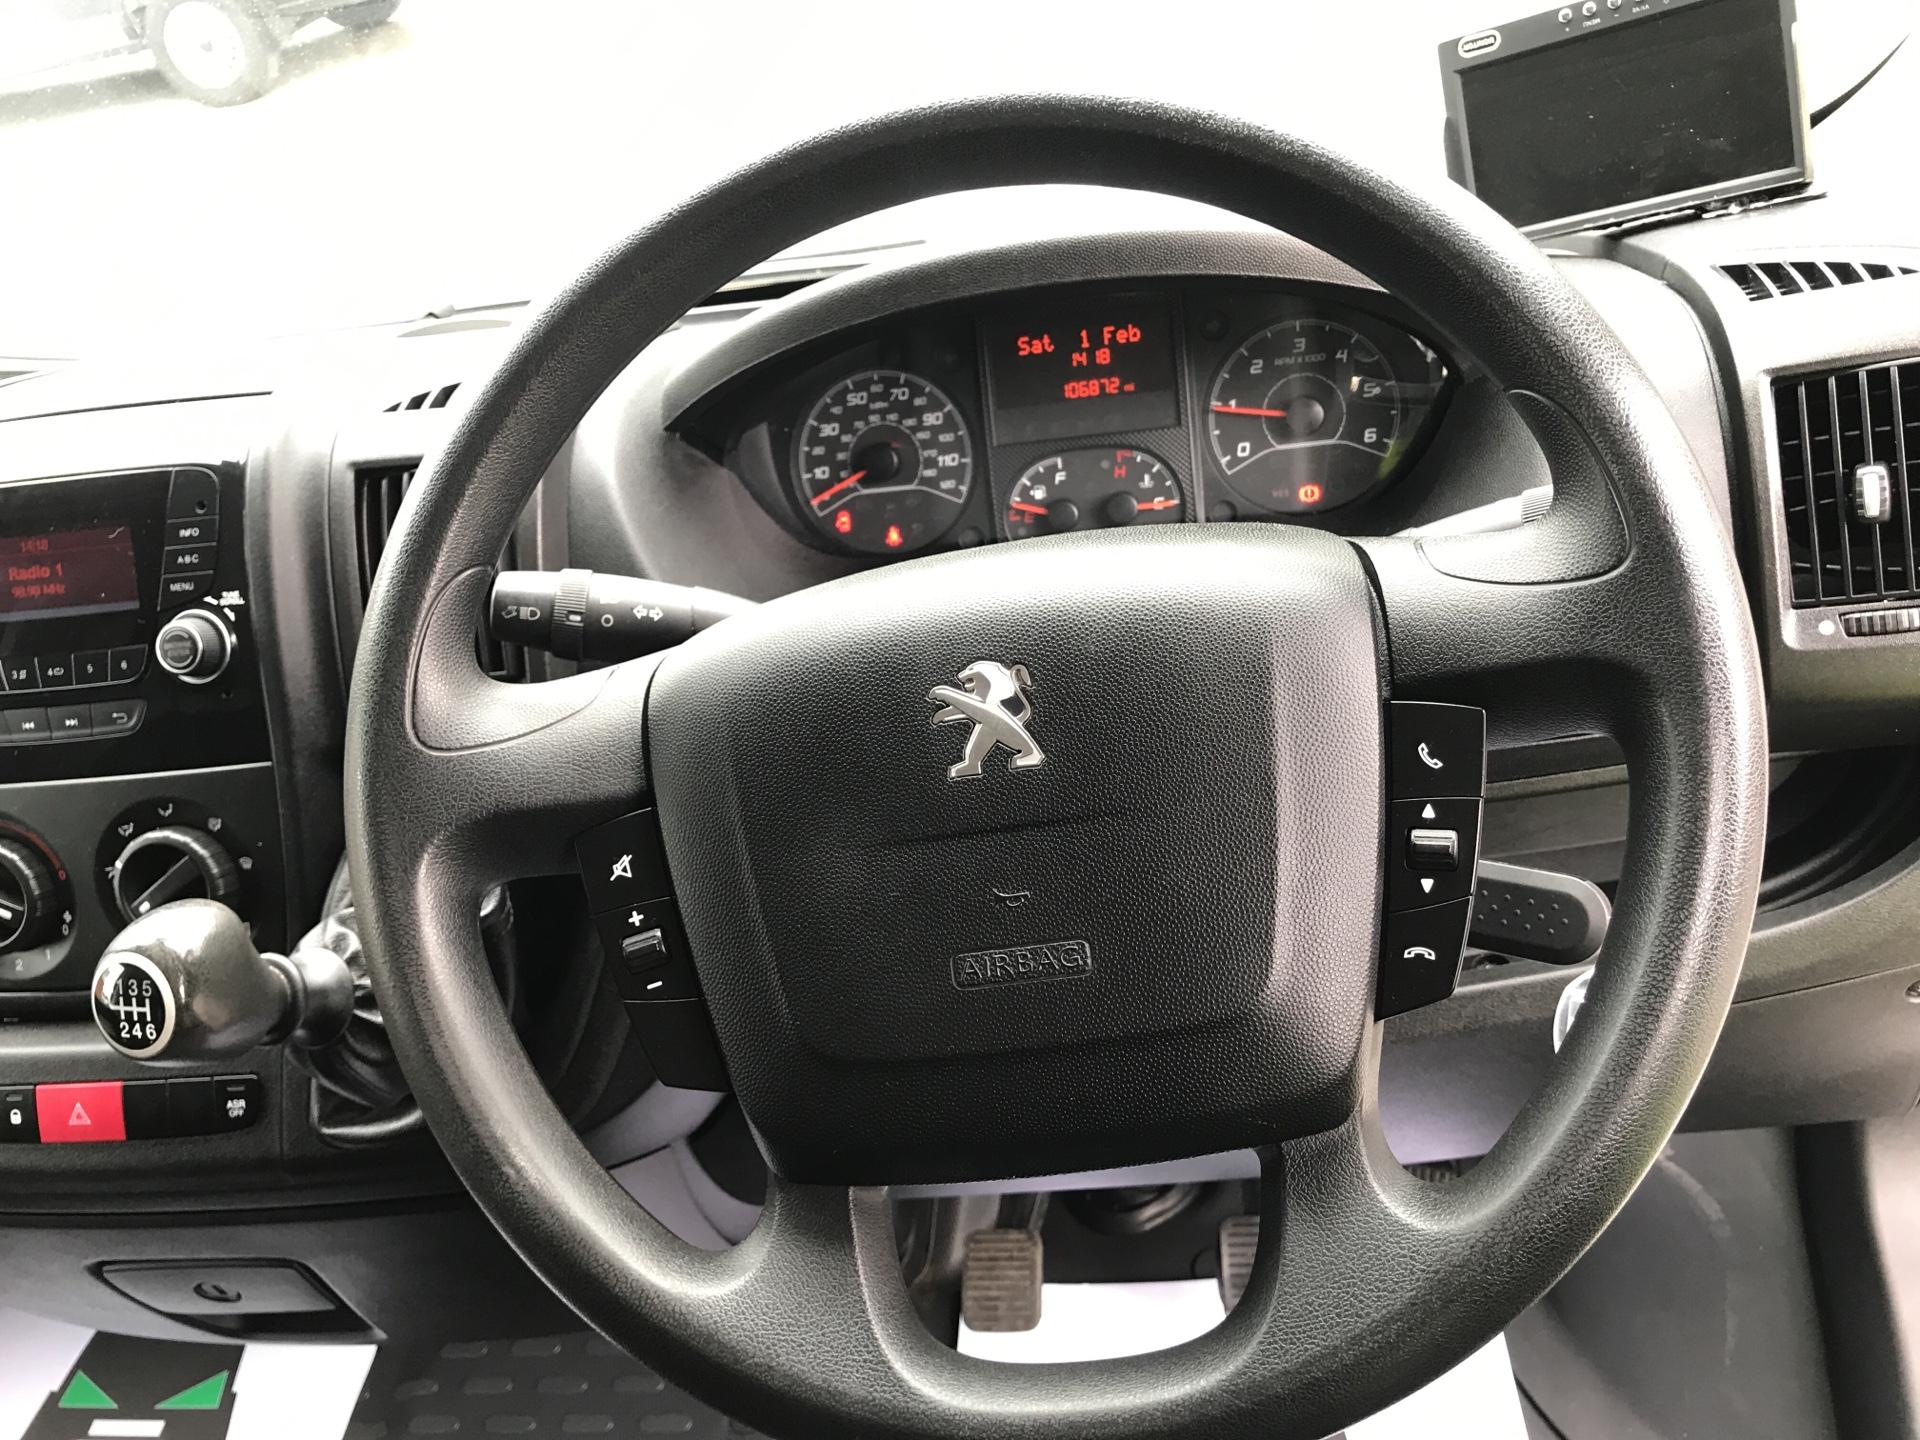 2015 Peugeot Boxer 2.2 Hdi LUTON LOW LOADER 130Ps (NX15BHY) Image 12